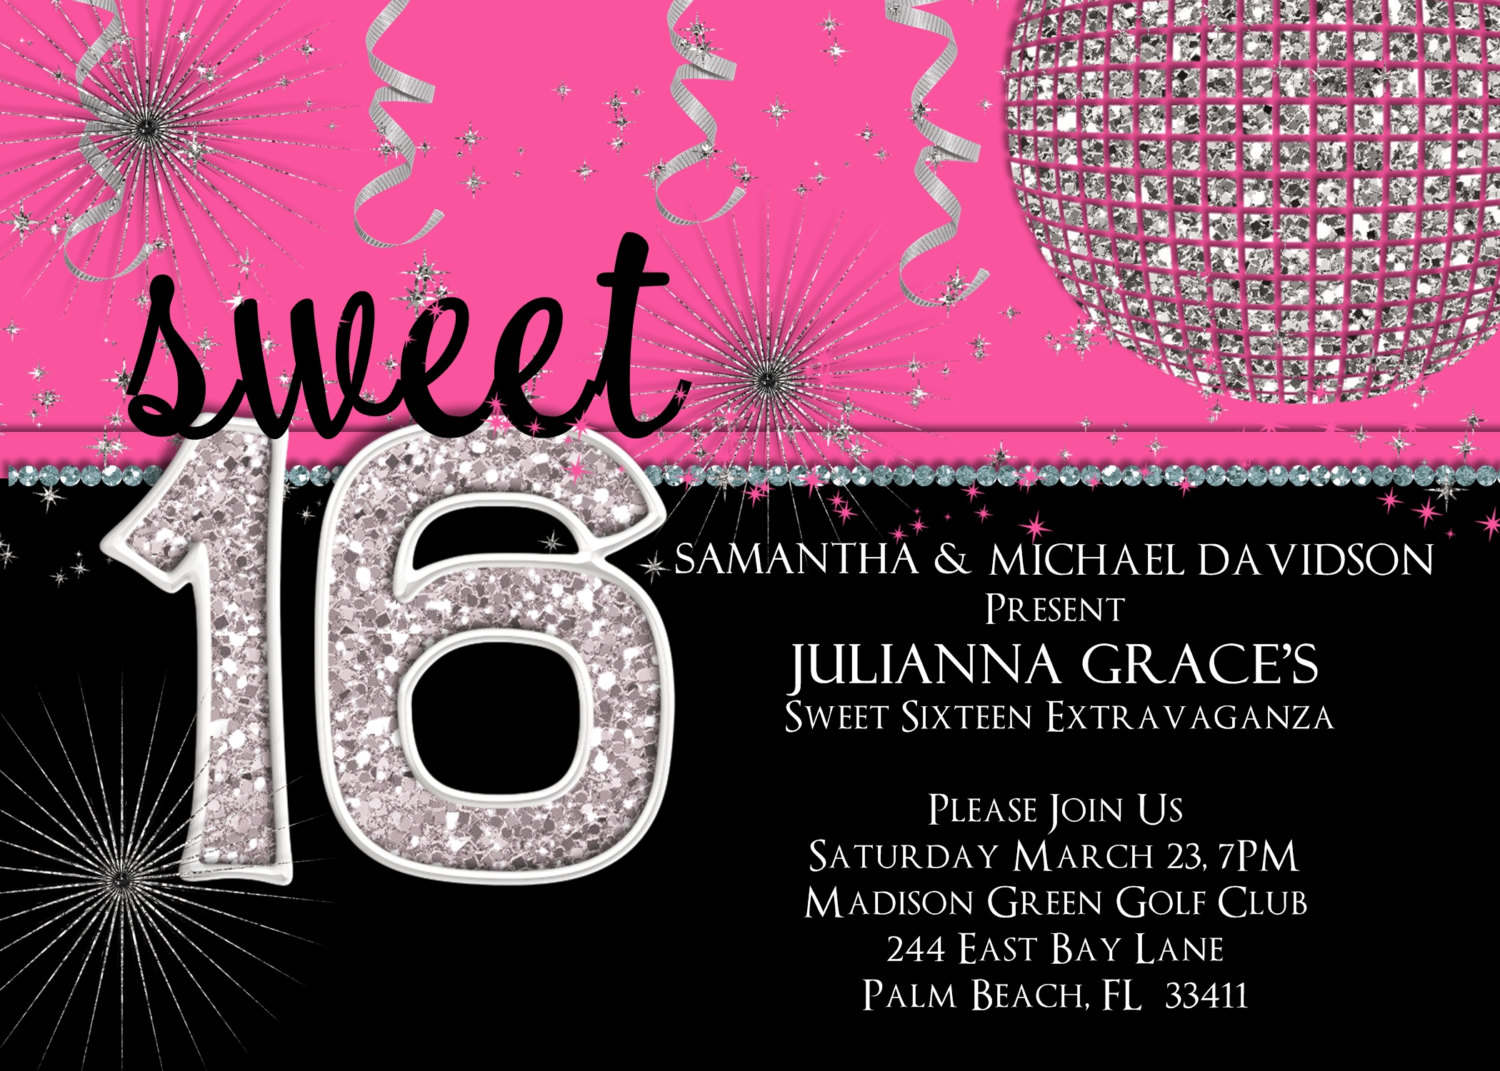 Sweet 16 Party Invitations Templates Sweet 16 Party Invitations